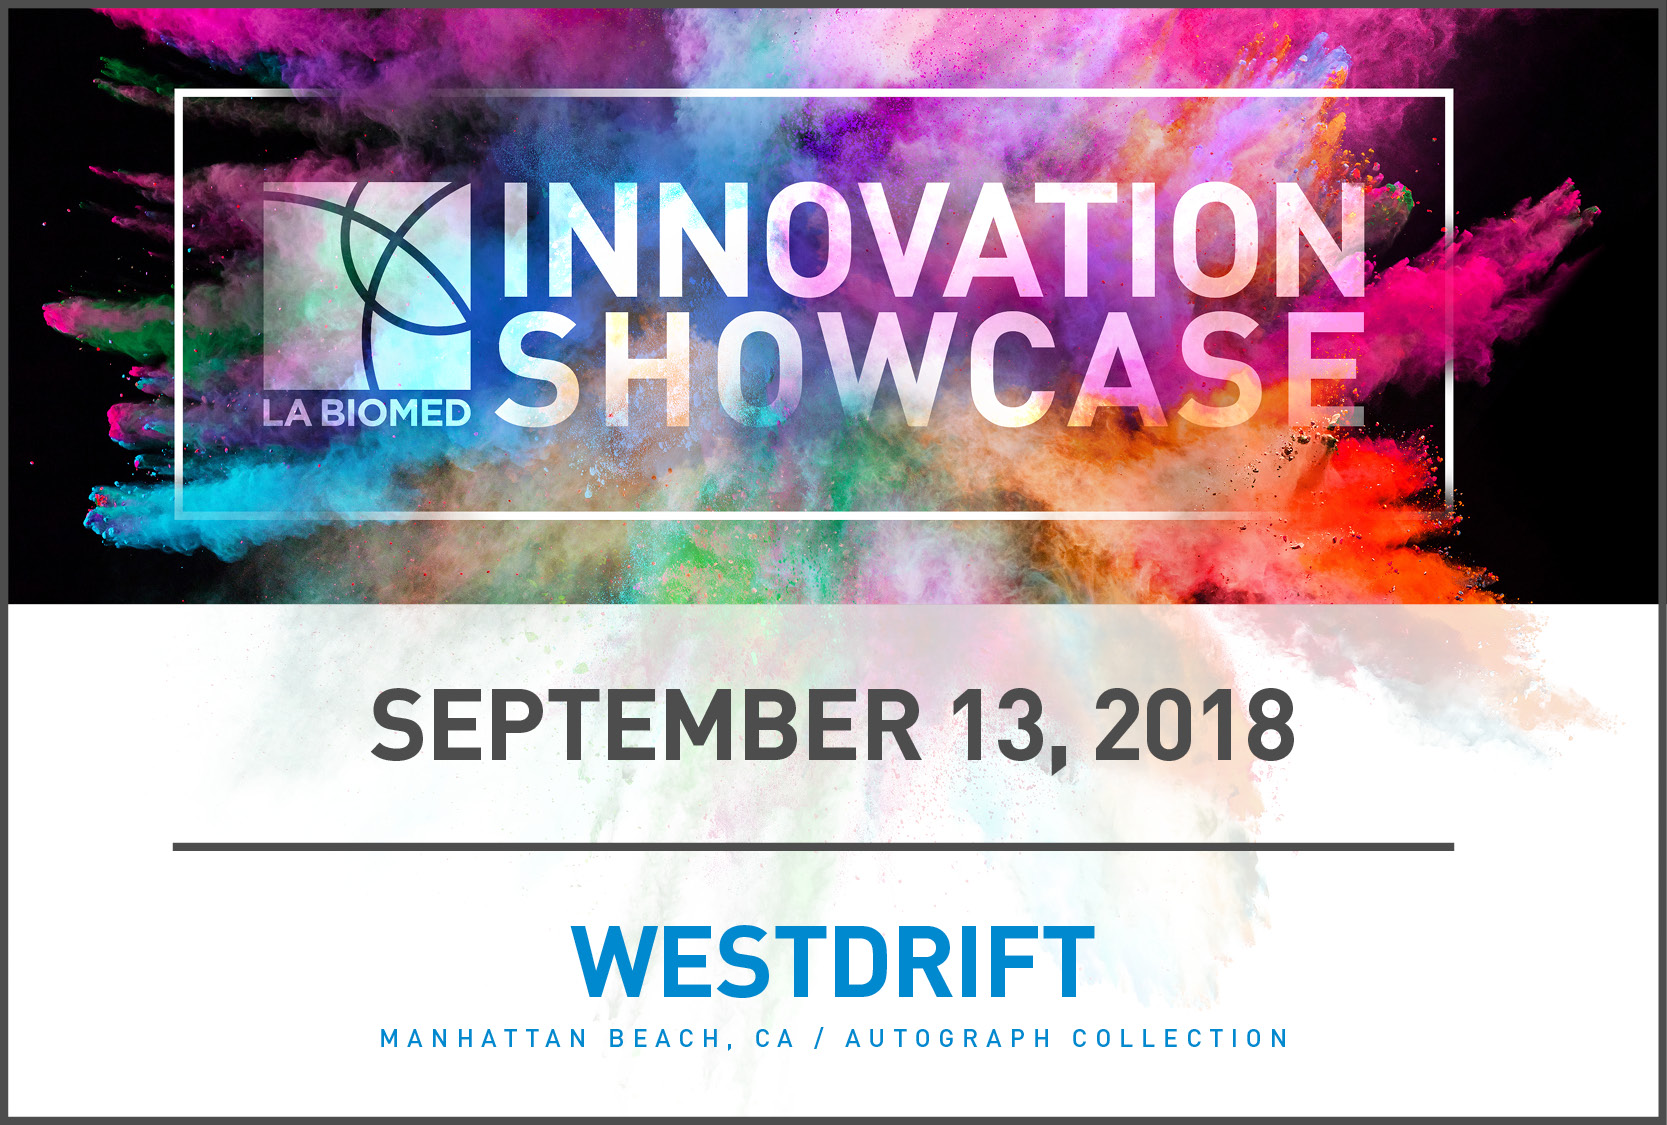 Innovation Showcase 2018